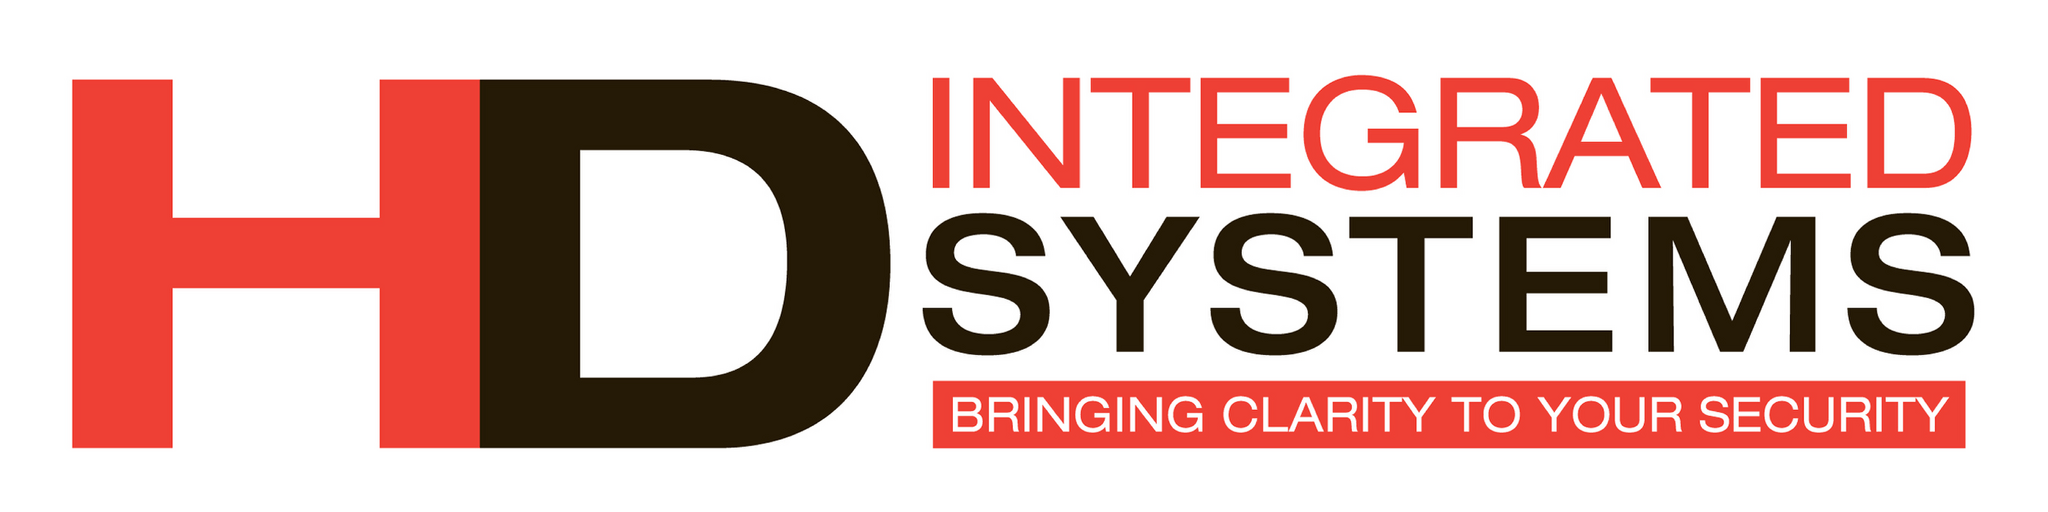 HD Integrated Systems